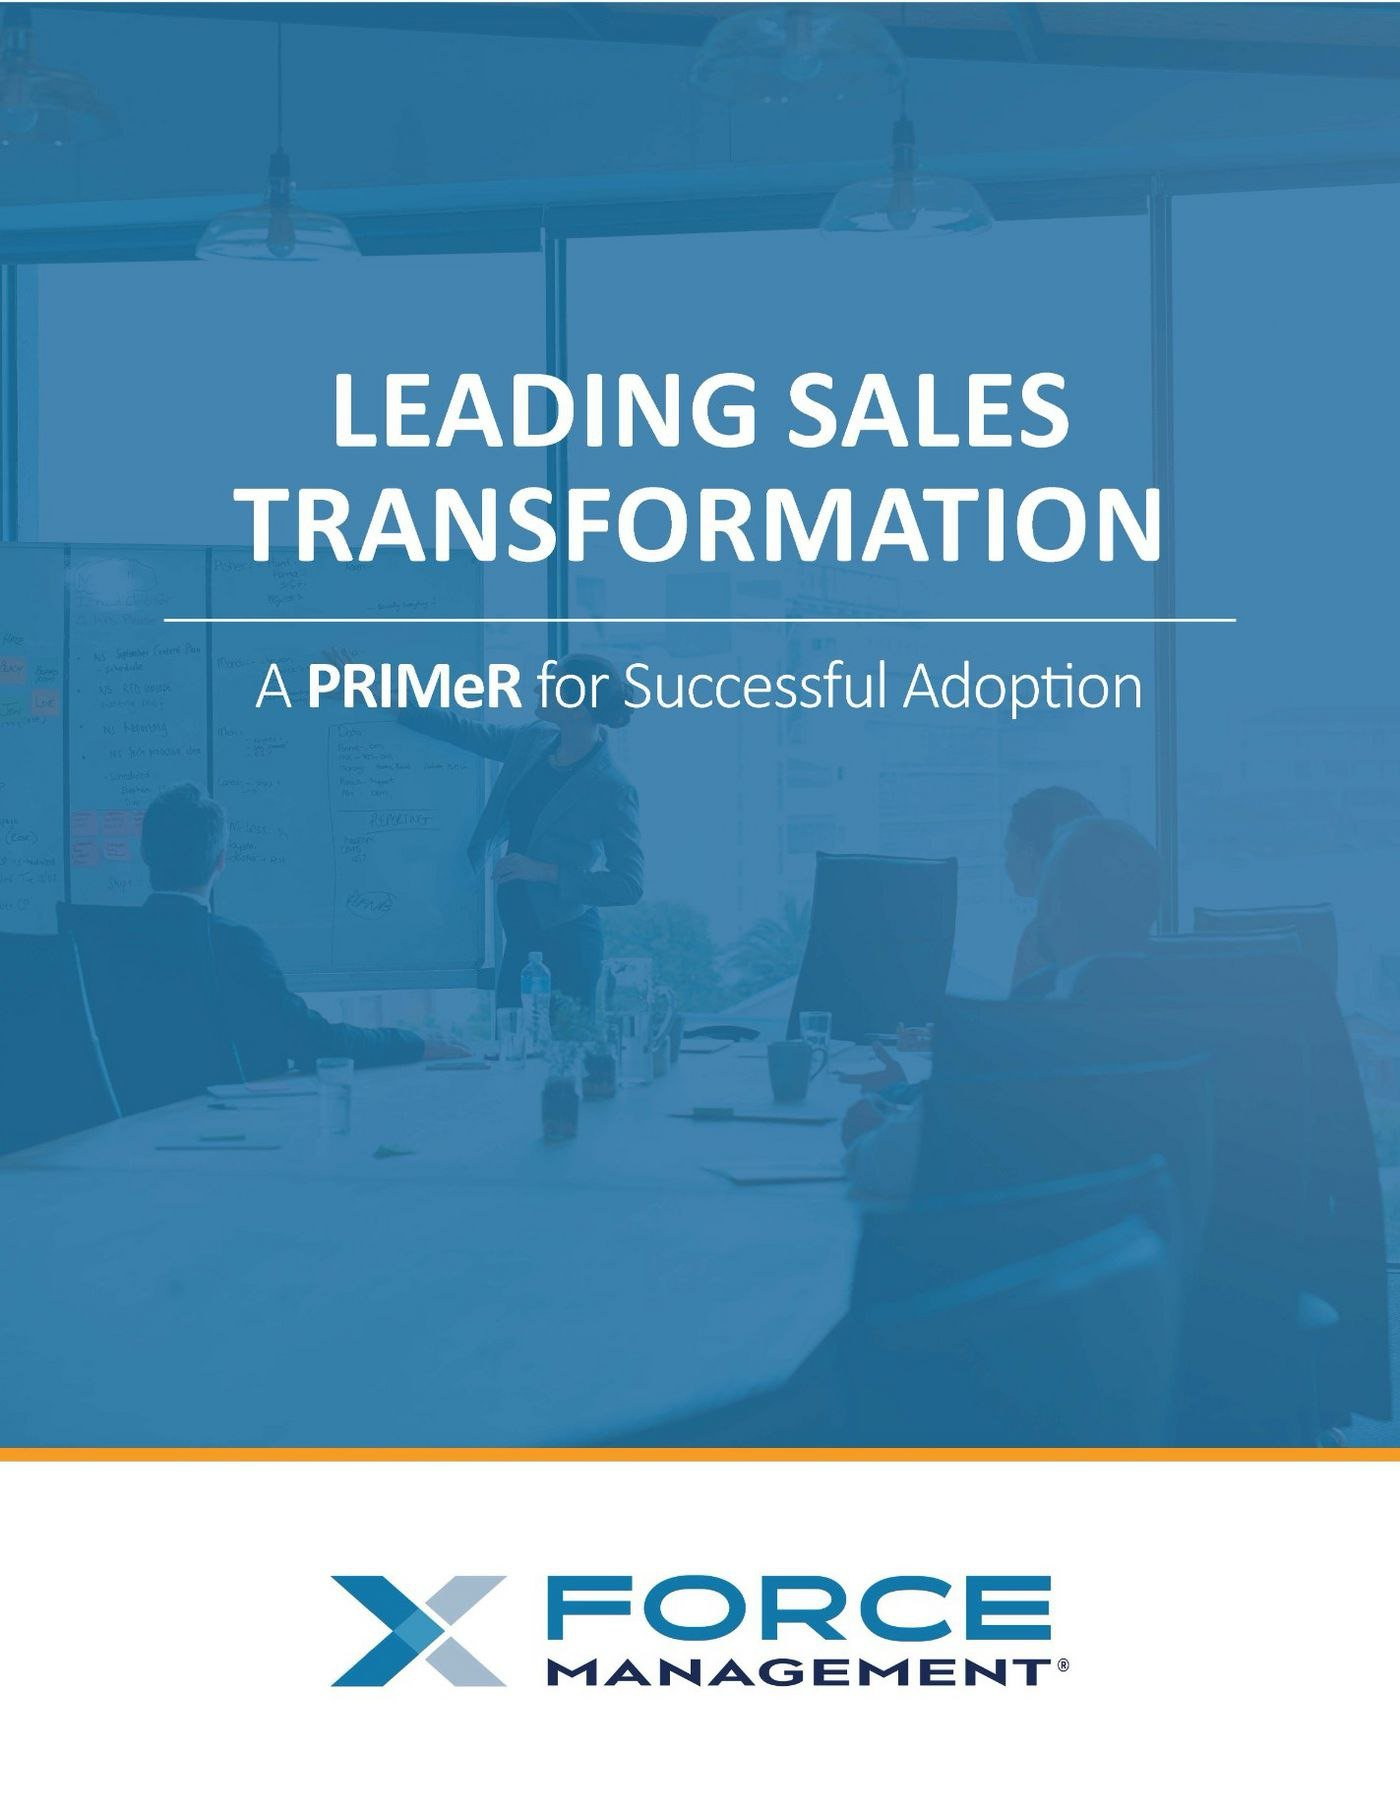 Download our guide to leading sales transformation